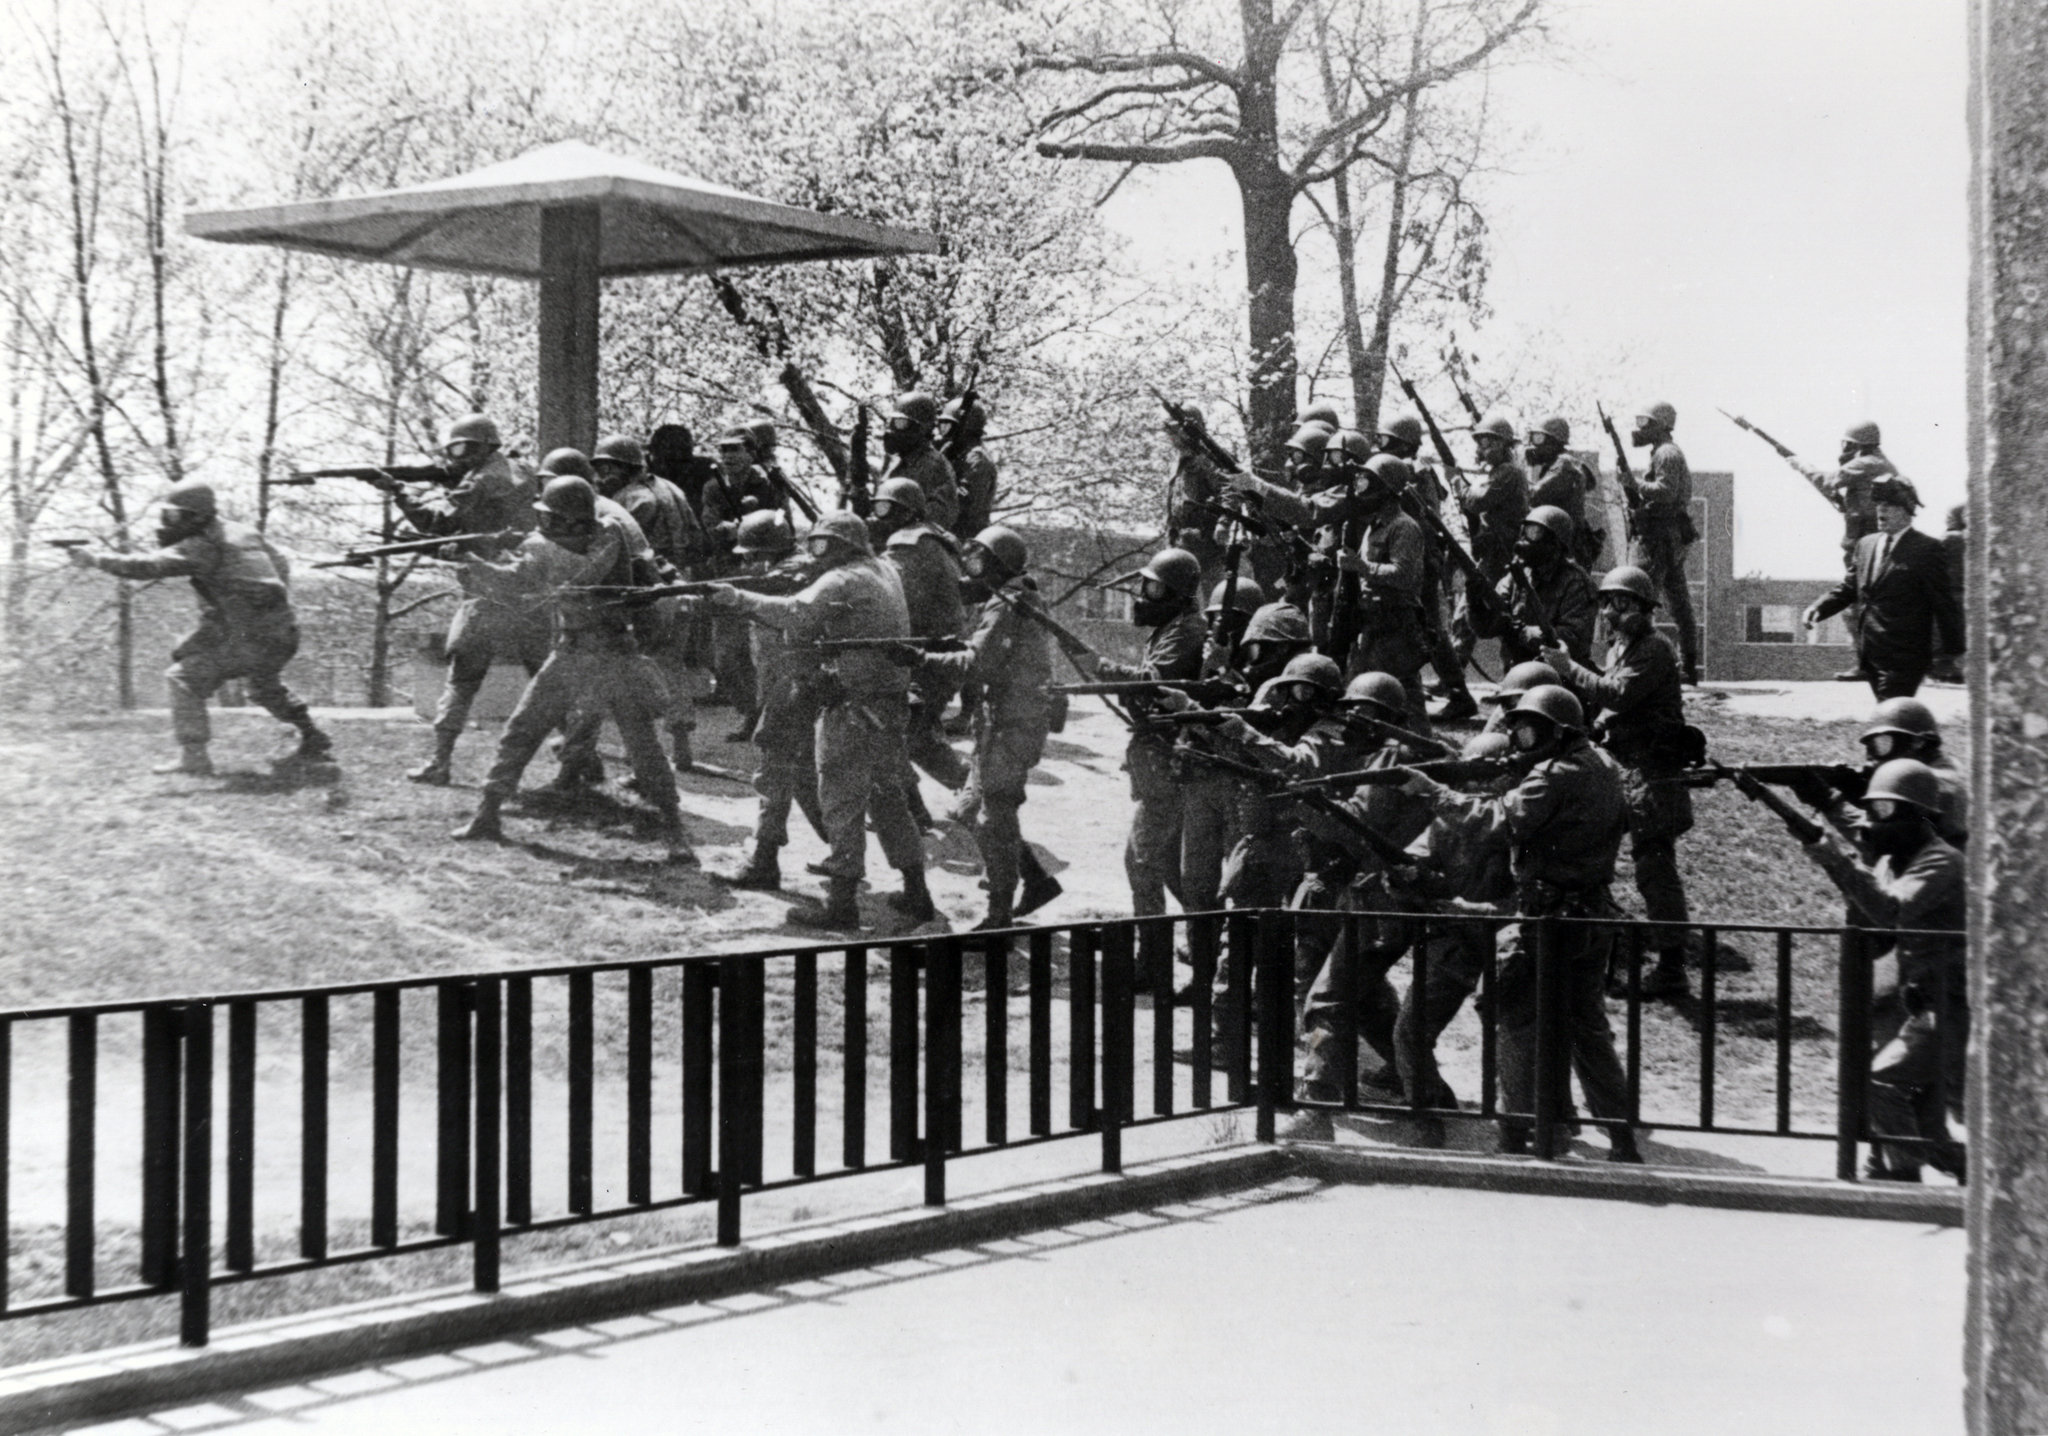 a comparison of the boston massacre and the kent state shootings in violent protests in america